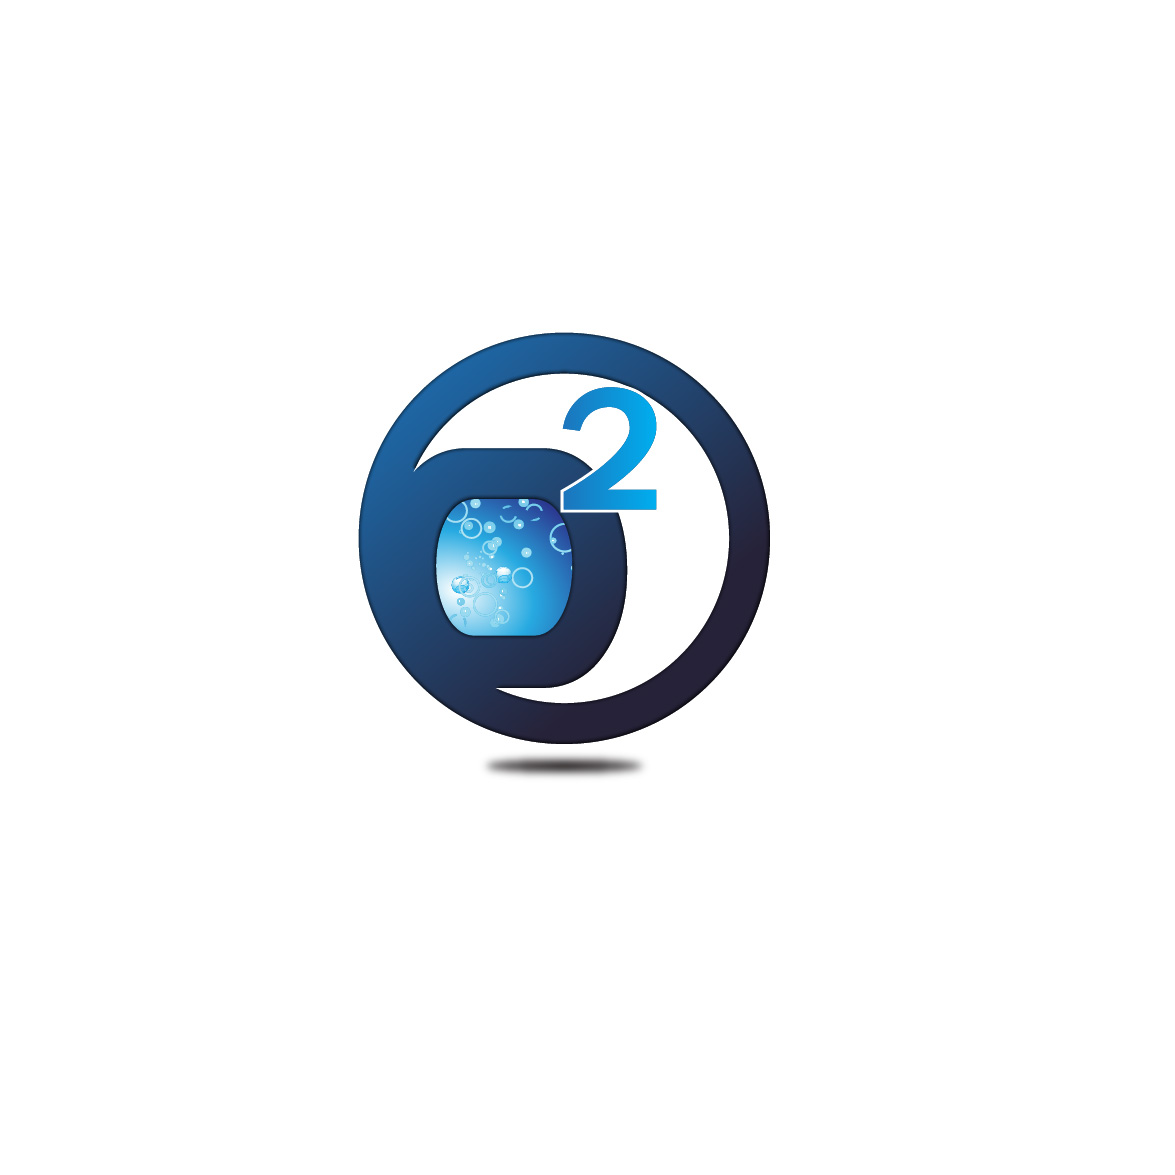 Logo Design by Robert Engi - Entry No. 183 in the Logo Design Contest Artistic Logo Design for O2.